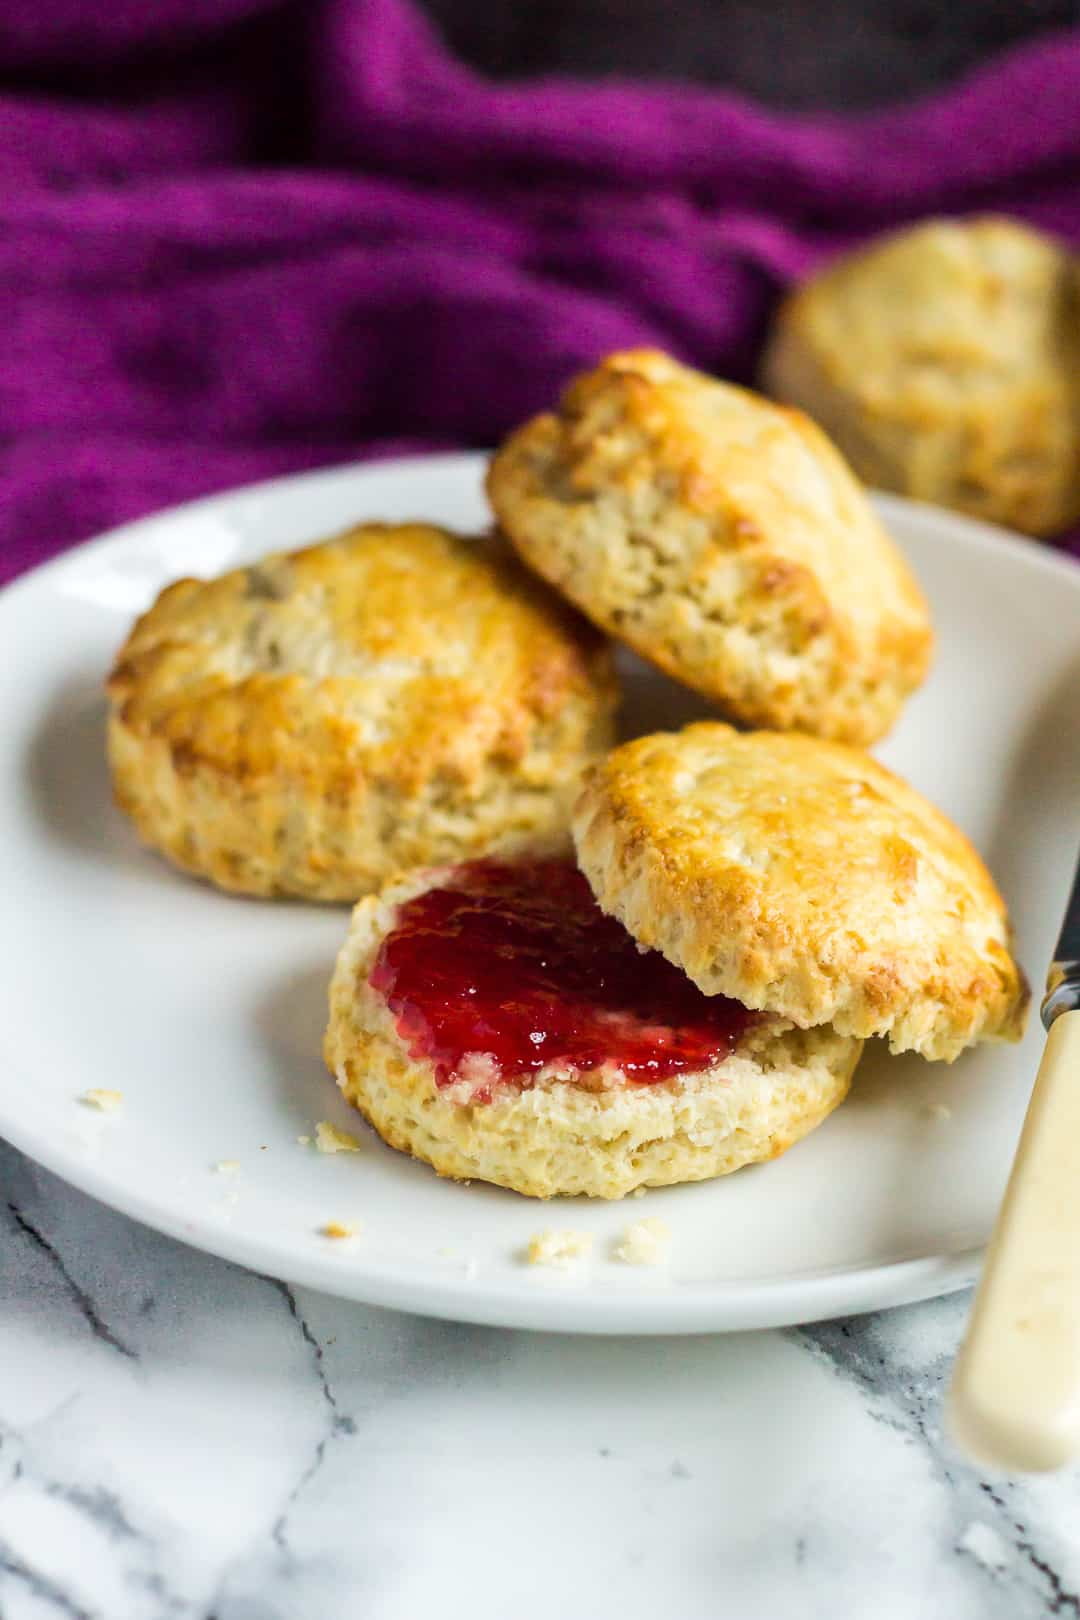 Classic English Scones served on a small white plate.